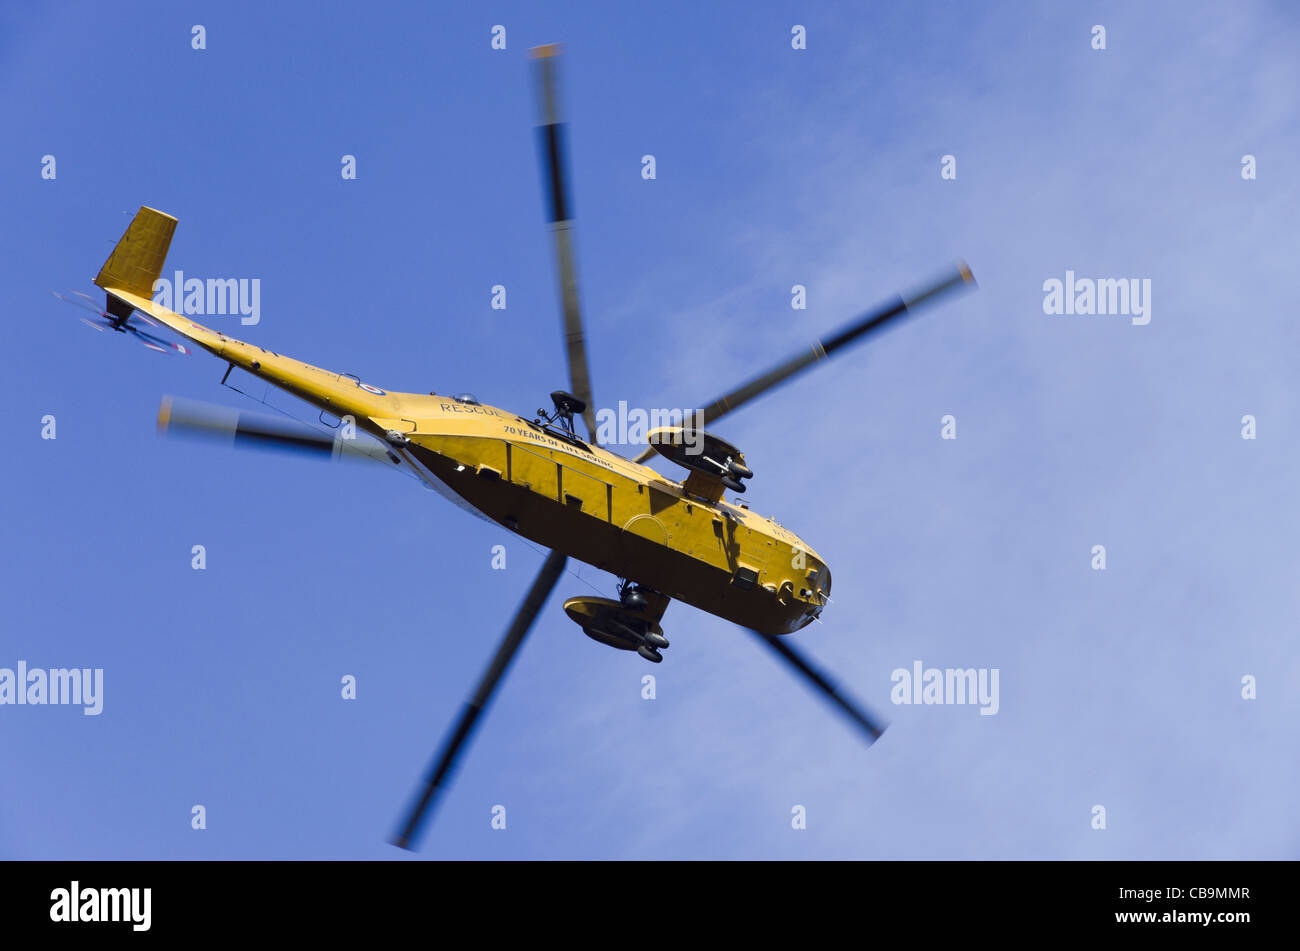 North Wales UK RAF Sea King HAR3A search and rescue helicopter flying in a blue sky from below - Stock Image